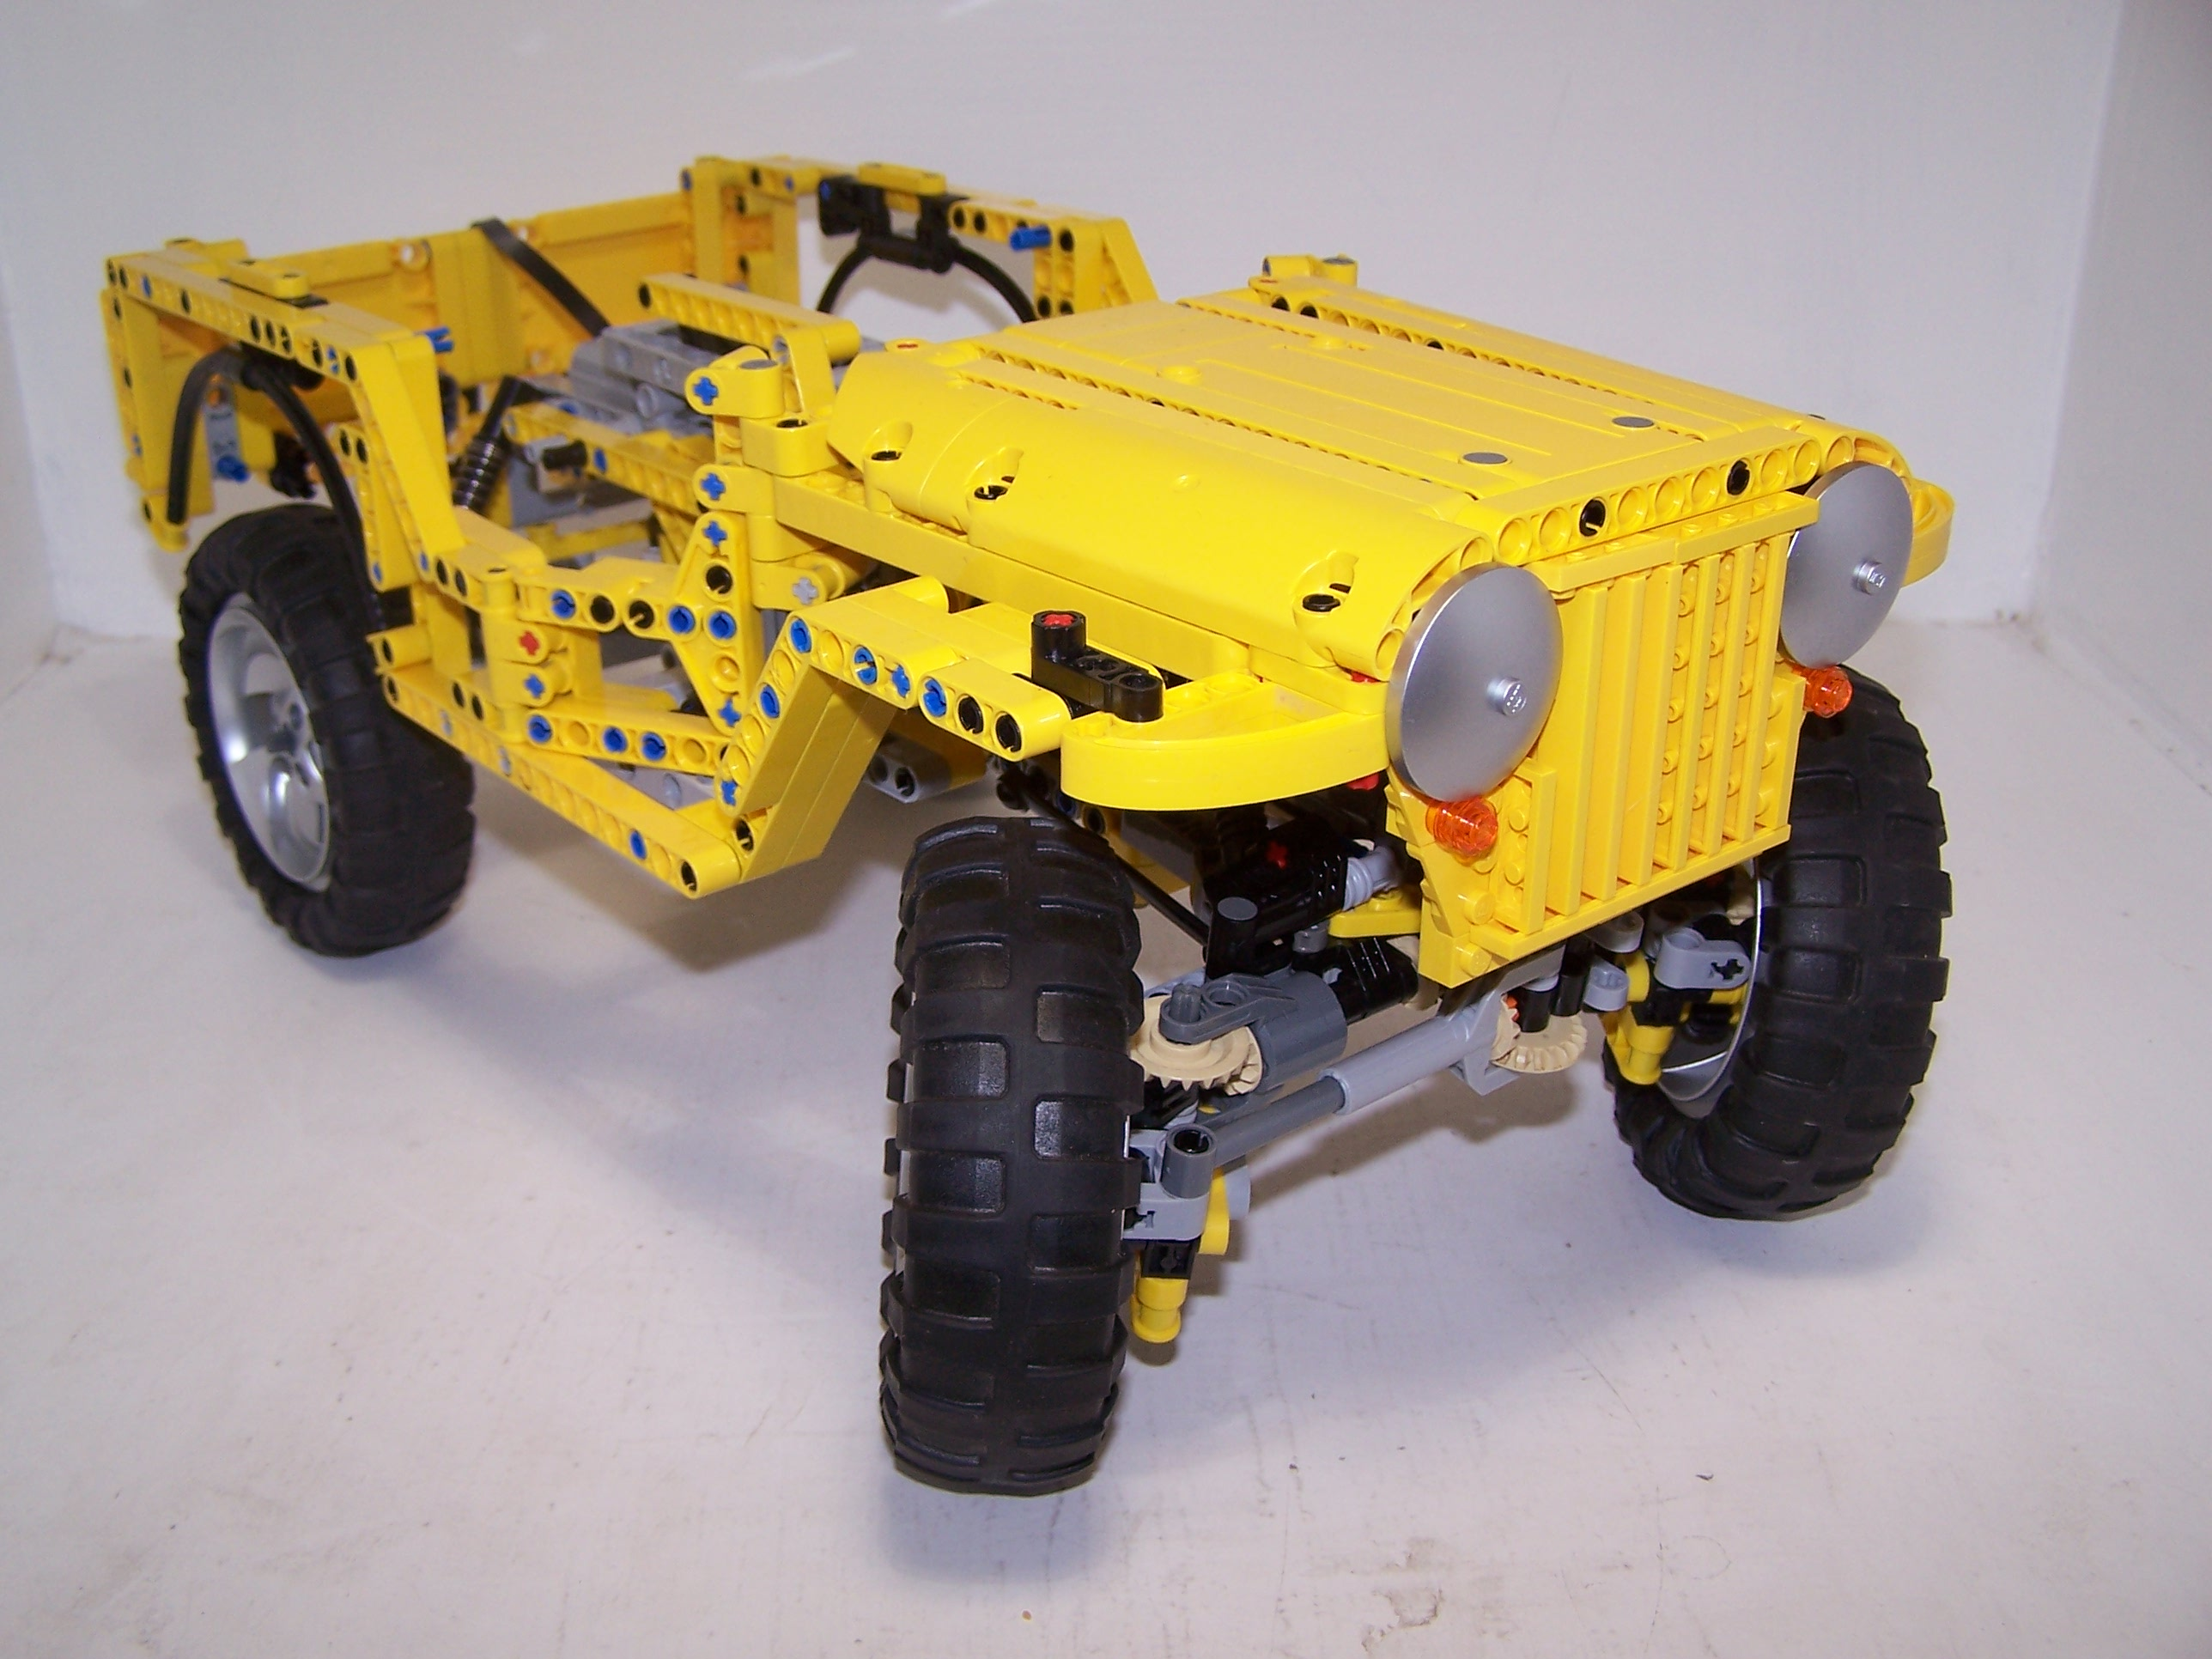 moc willys jeep page 2 lego technic mindstorms. Black Bedroom Furniture Sets. Home Design Ideas